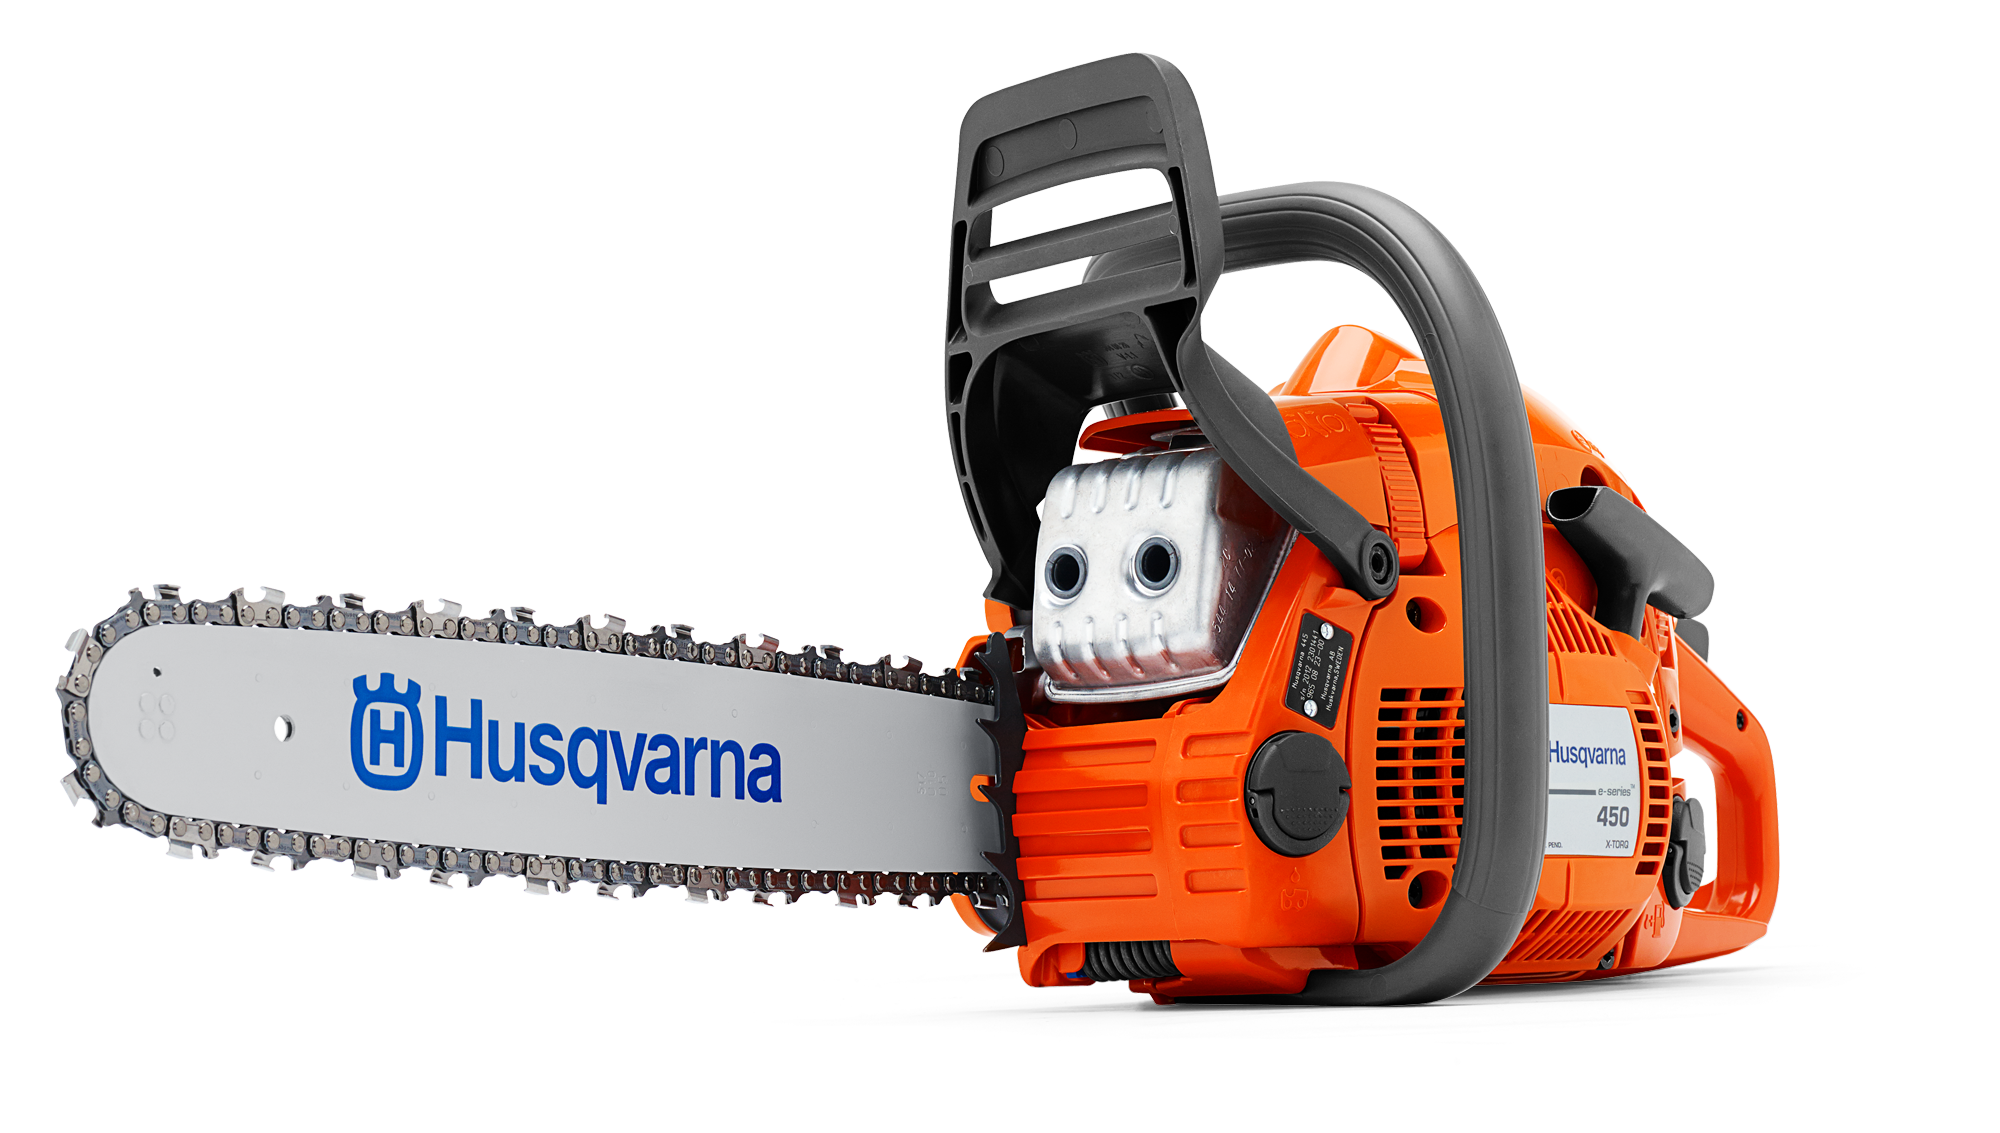 Image for 450e II Gas Chainsaw                                                                                                             from HusqvarnaB2C